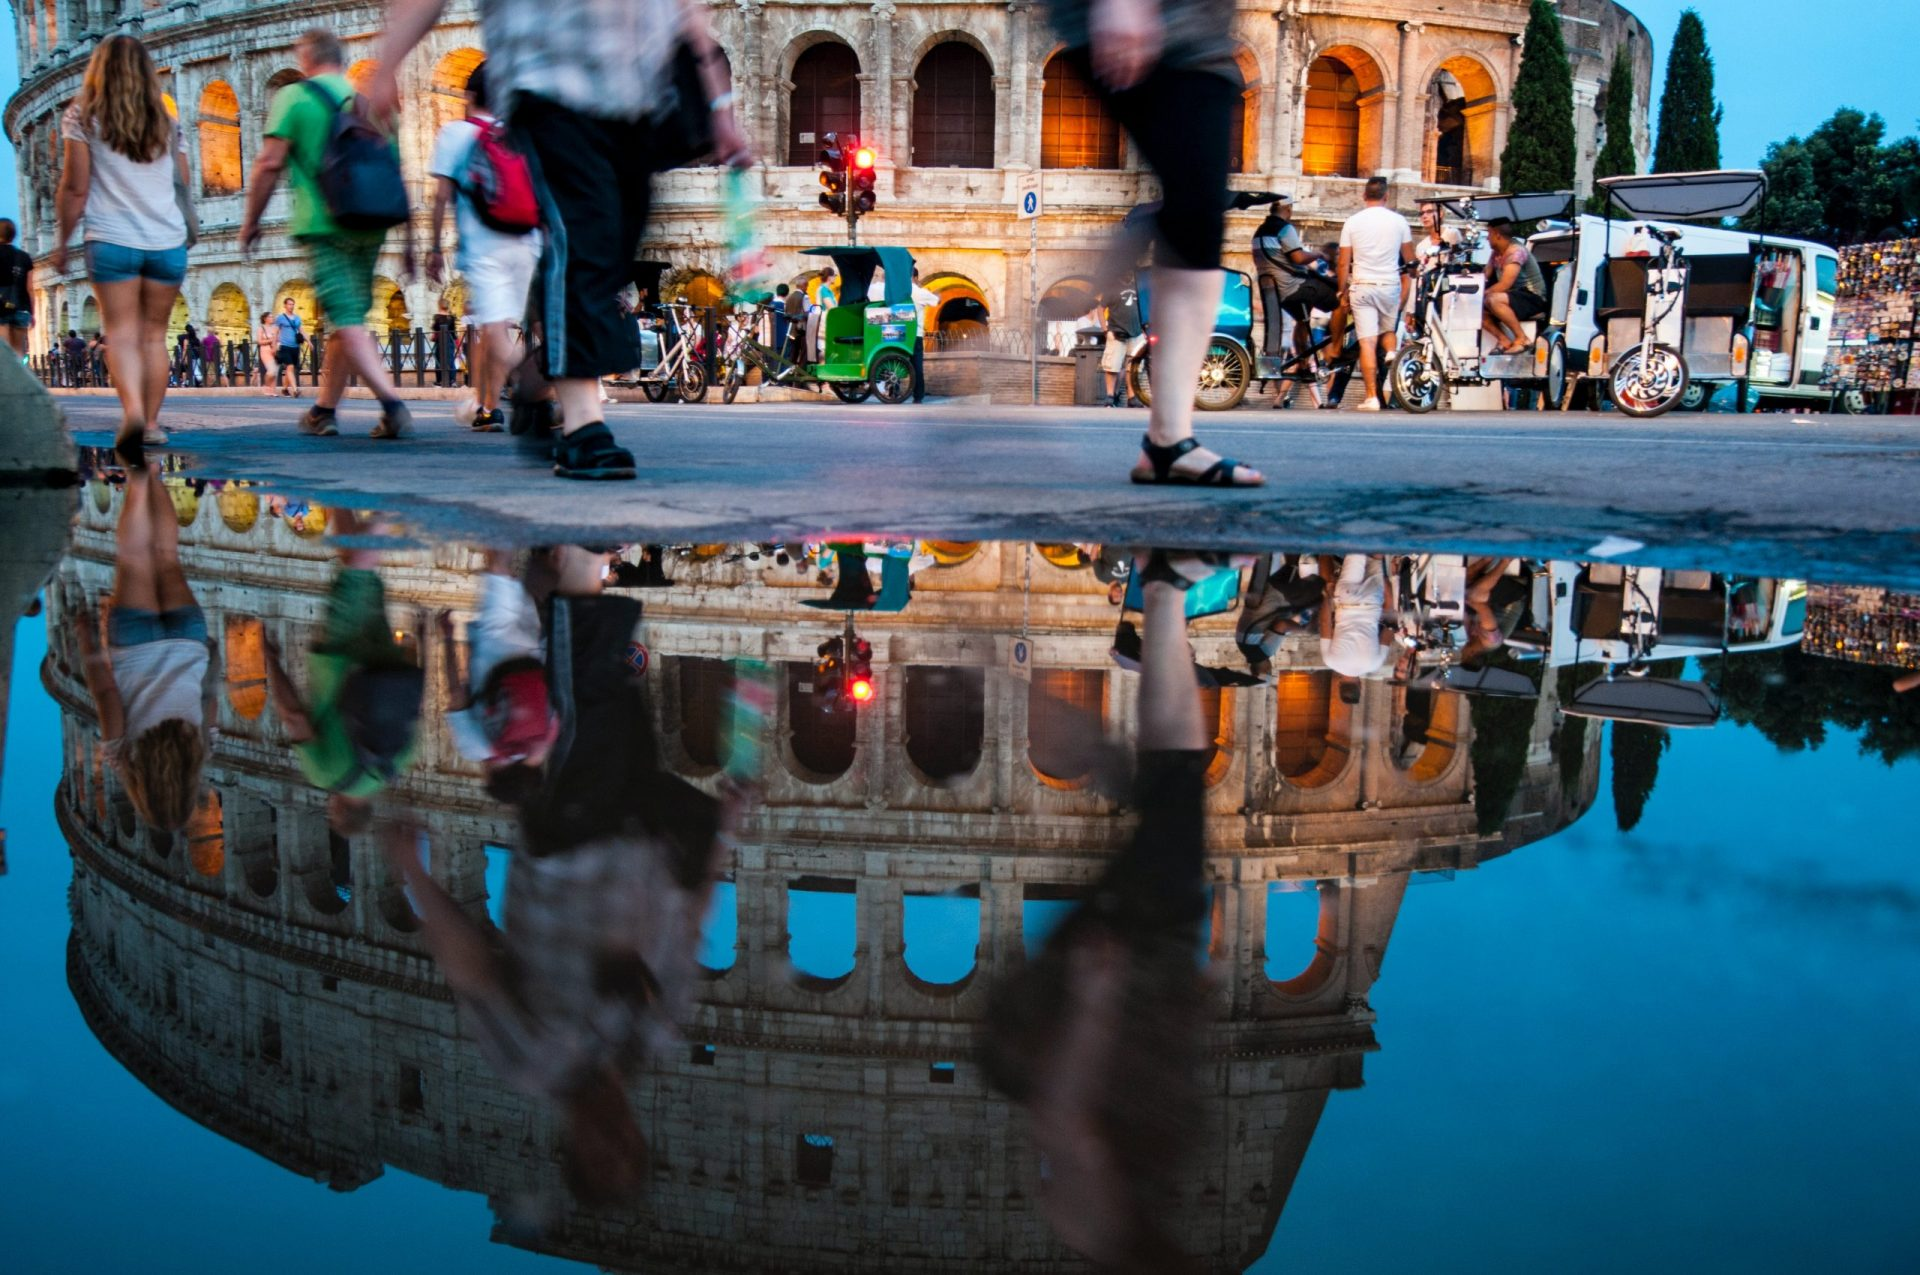 10 Common Travel Photography Mistakes - Colosseum in Rome reflection with slow shutter people movement